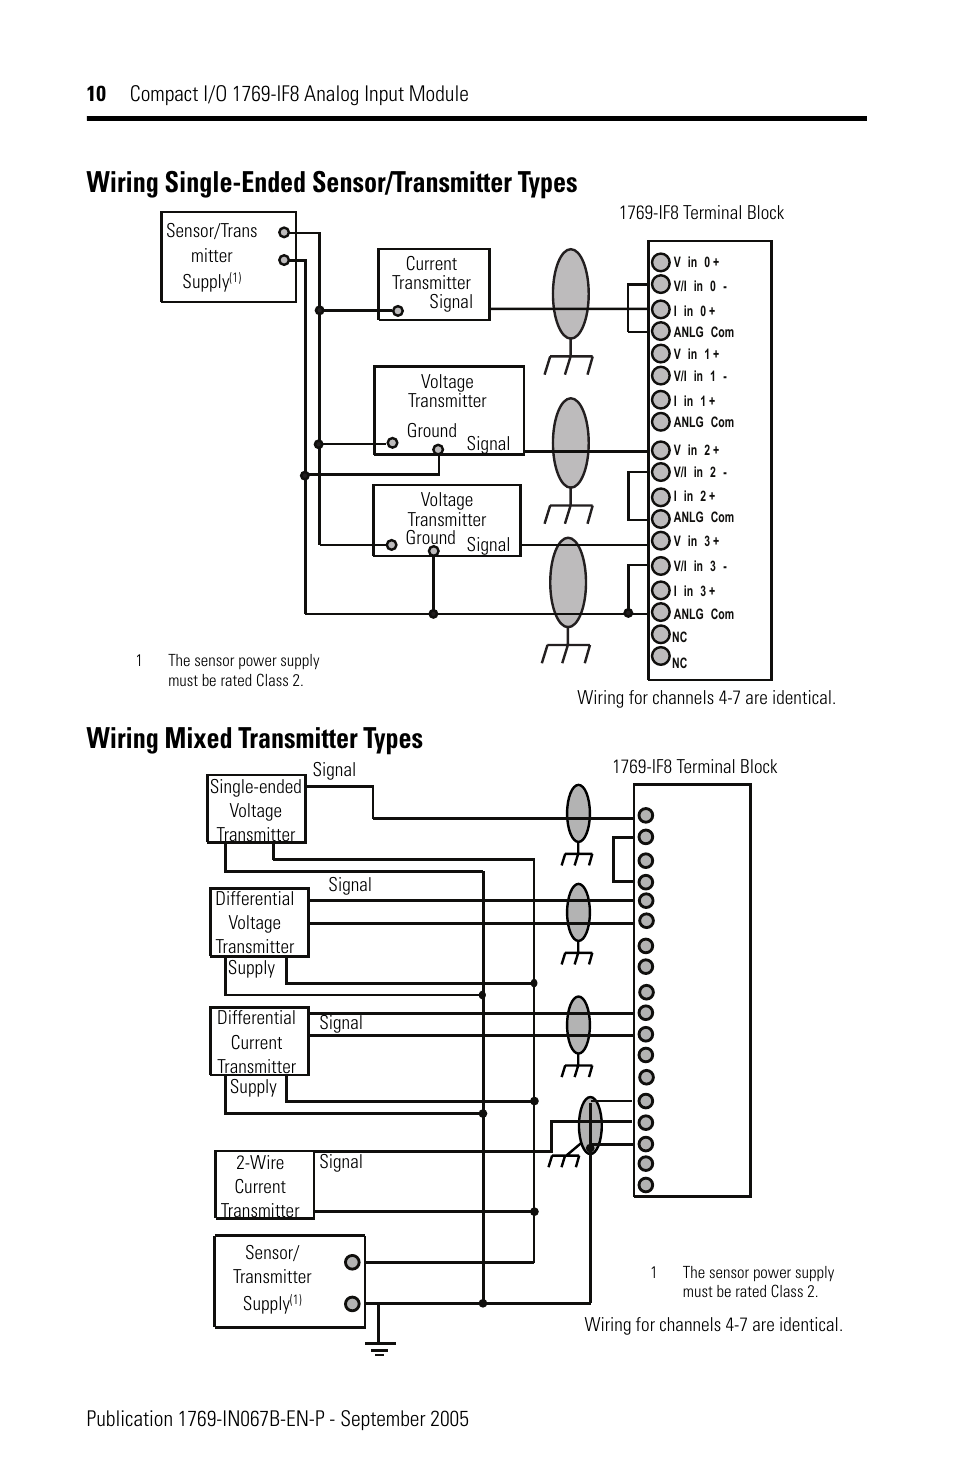 rockwell automation 1769 if8 compact 1769 if8 analog input module page10 1769 if8 wiring diagram wiring a potentiometer for motor \u2022 wiring 1756 ib16 wiring diagram at crackthecode.co